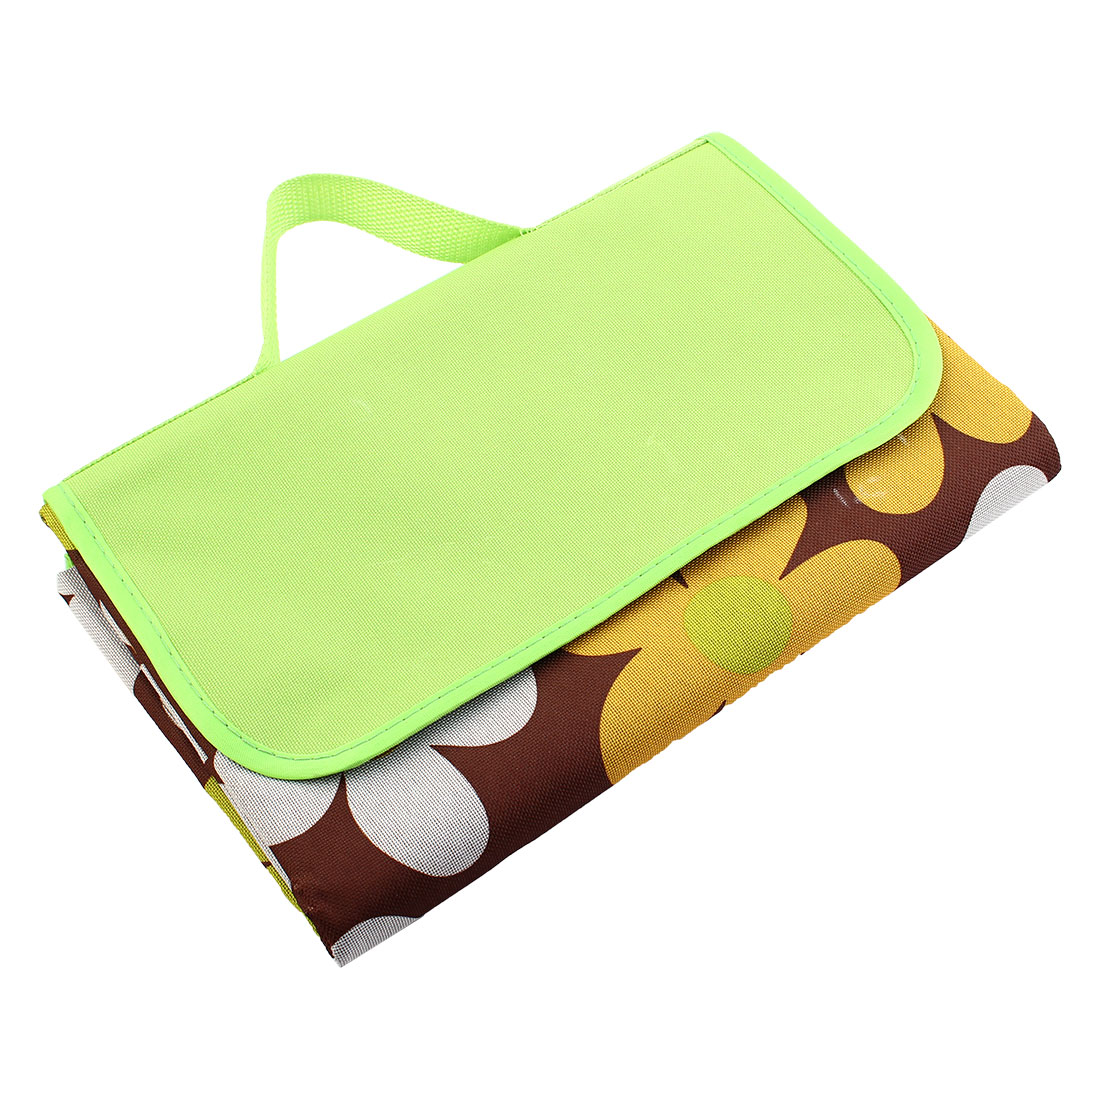 Travel Beach Water Resistant Pad Foldable Picnic Blanket Portable Camping Mat